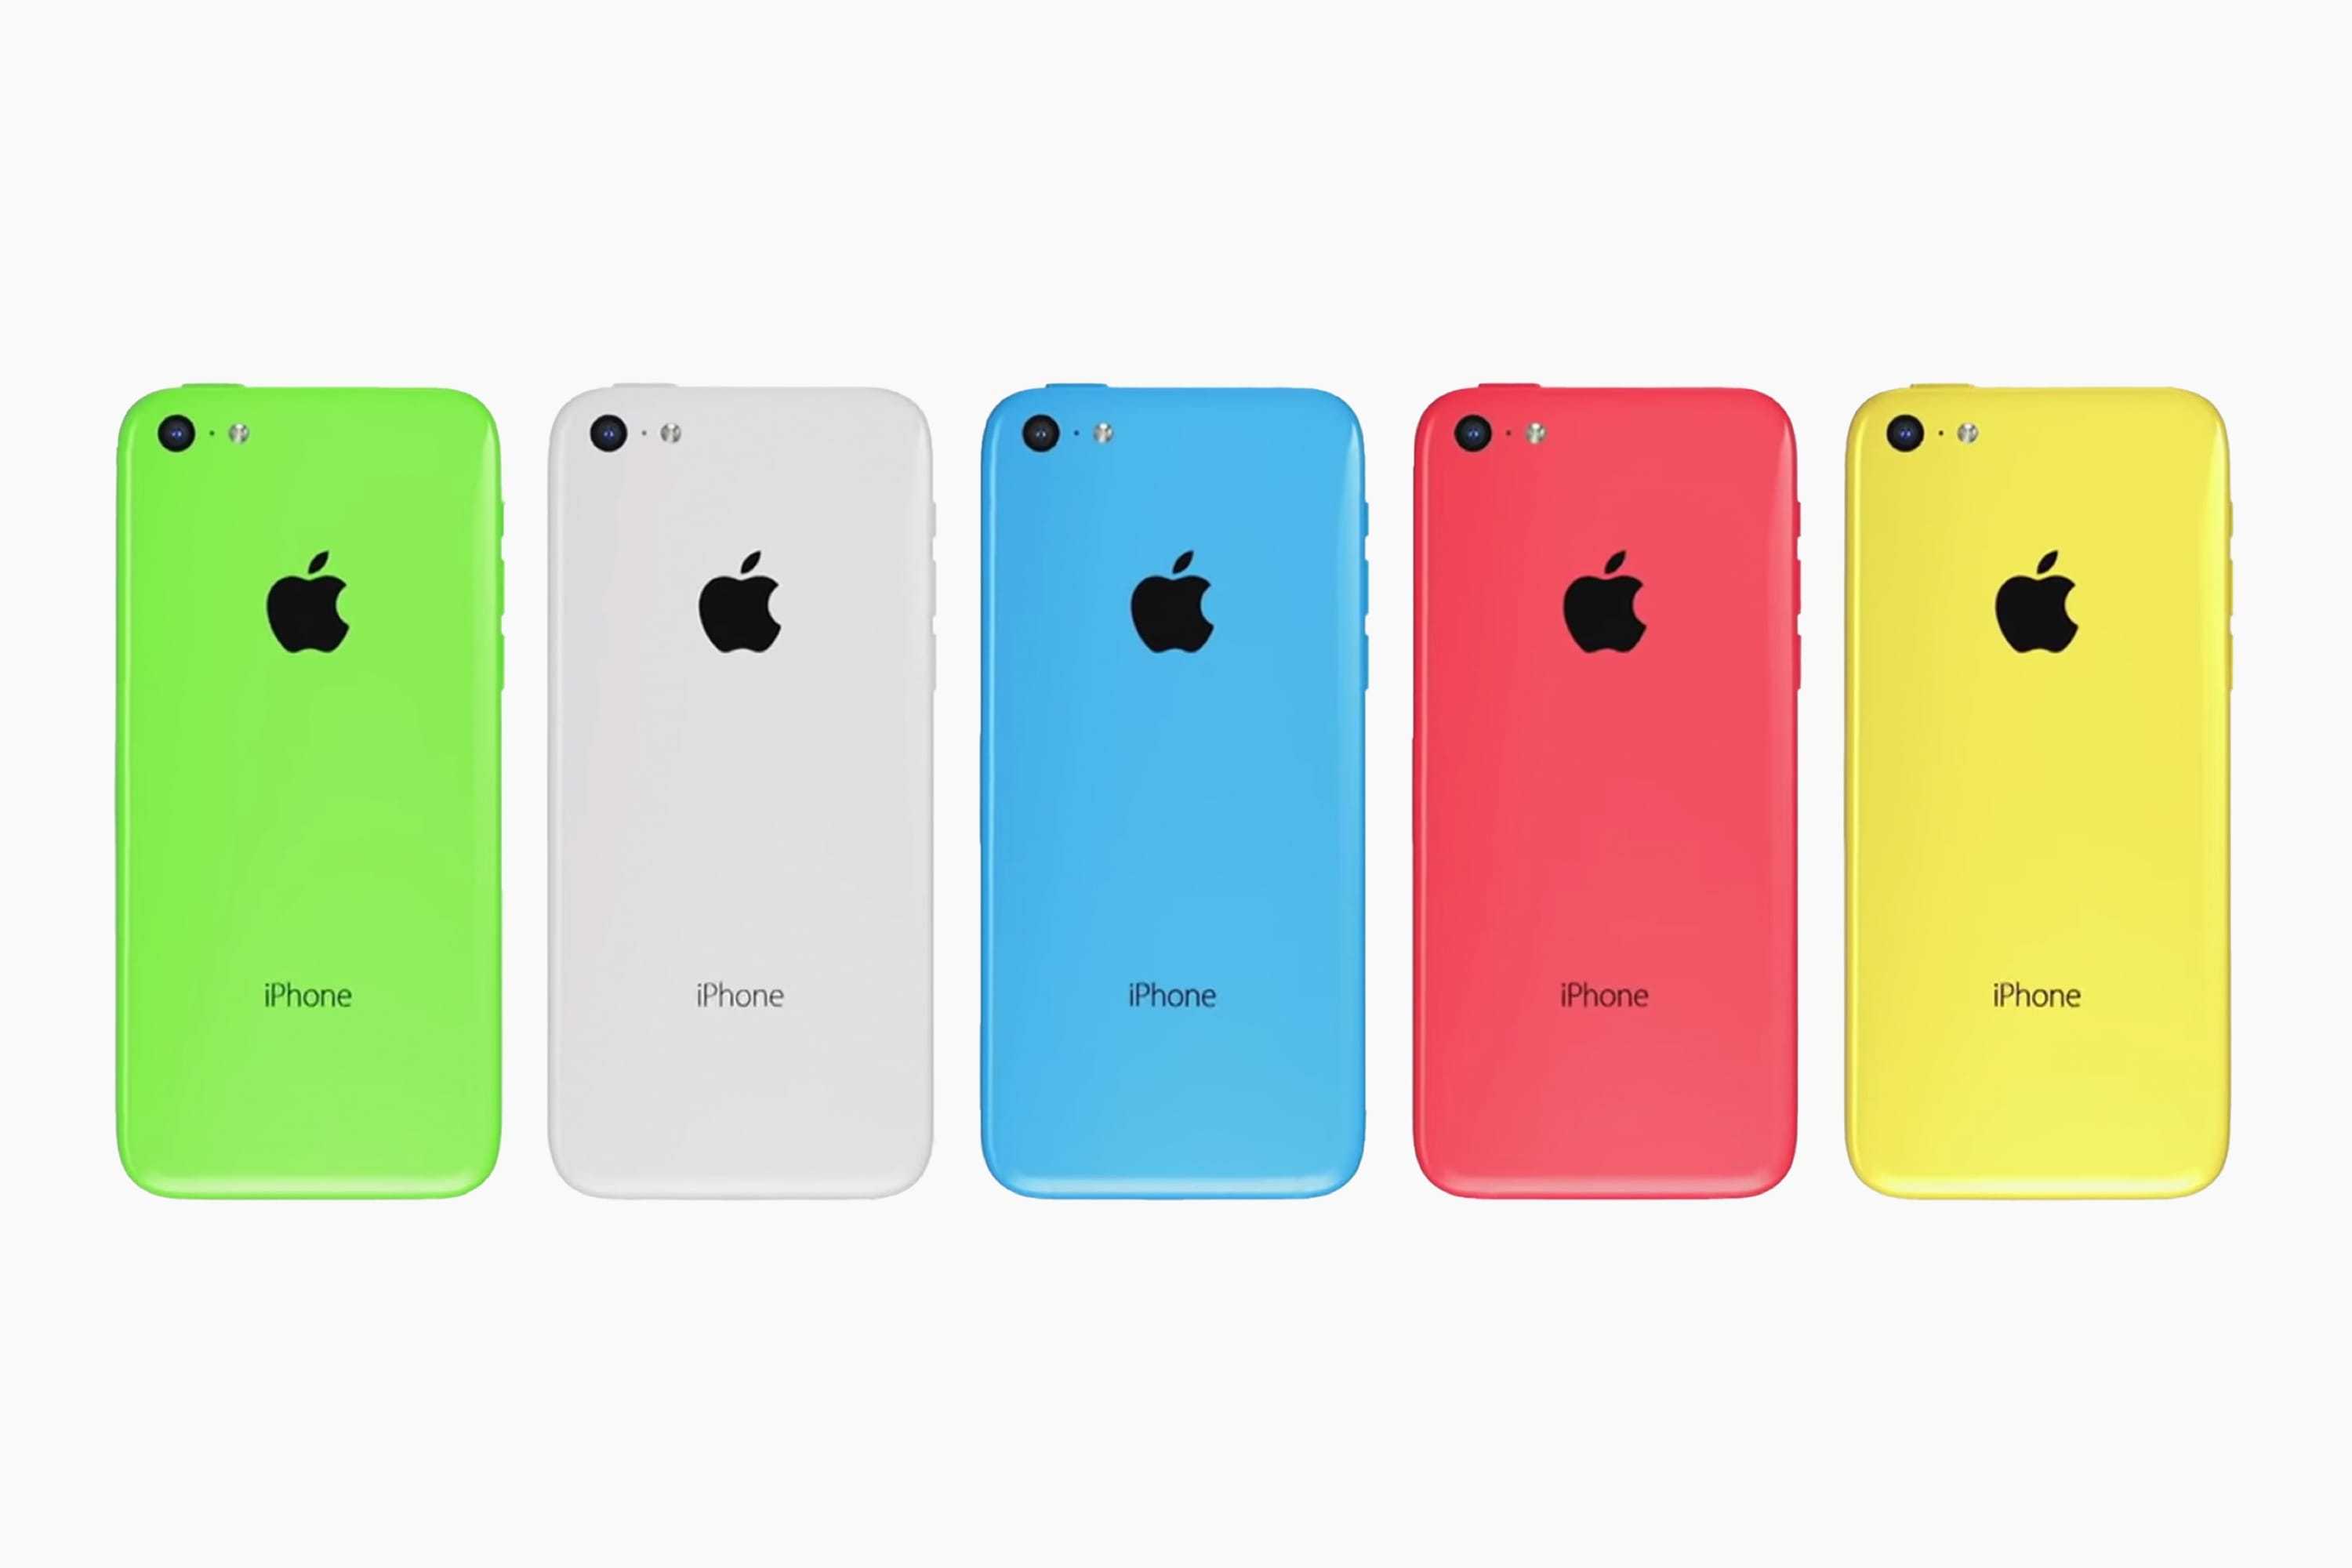 the-iphone-5c-joins-the-iphone-5-as-a-vintage-product-20201104-1